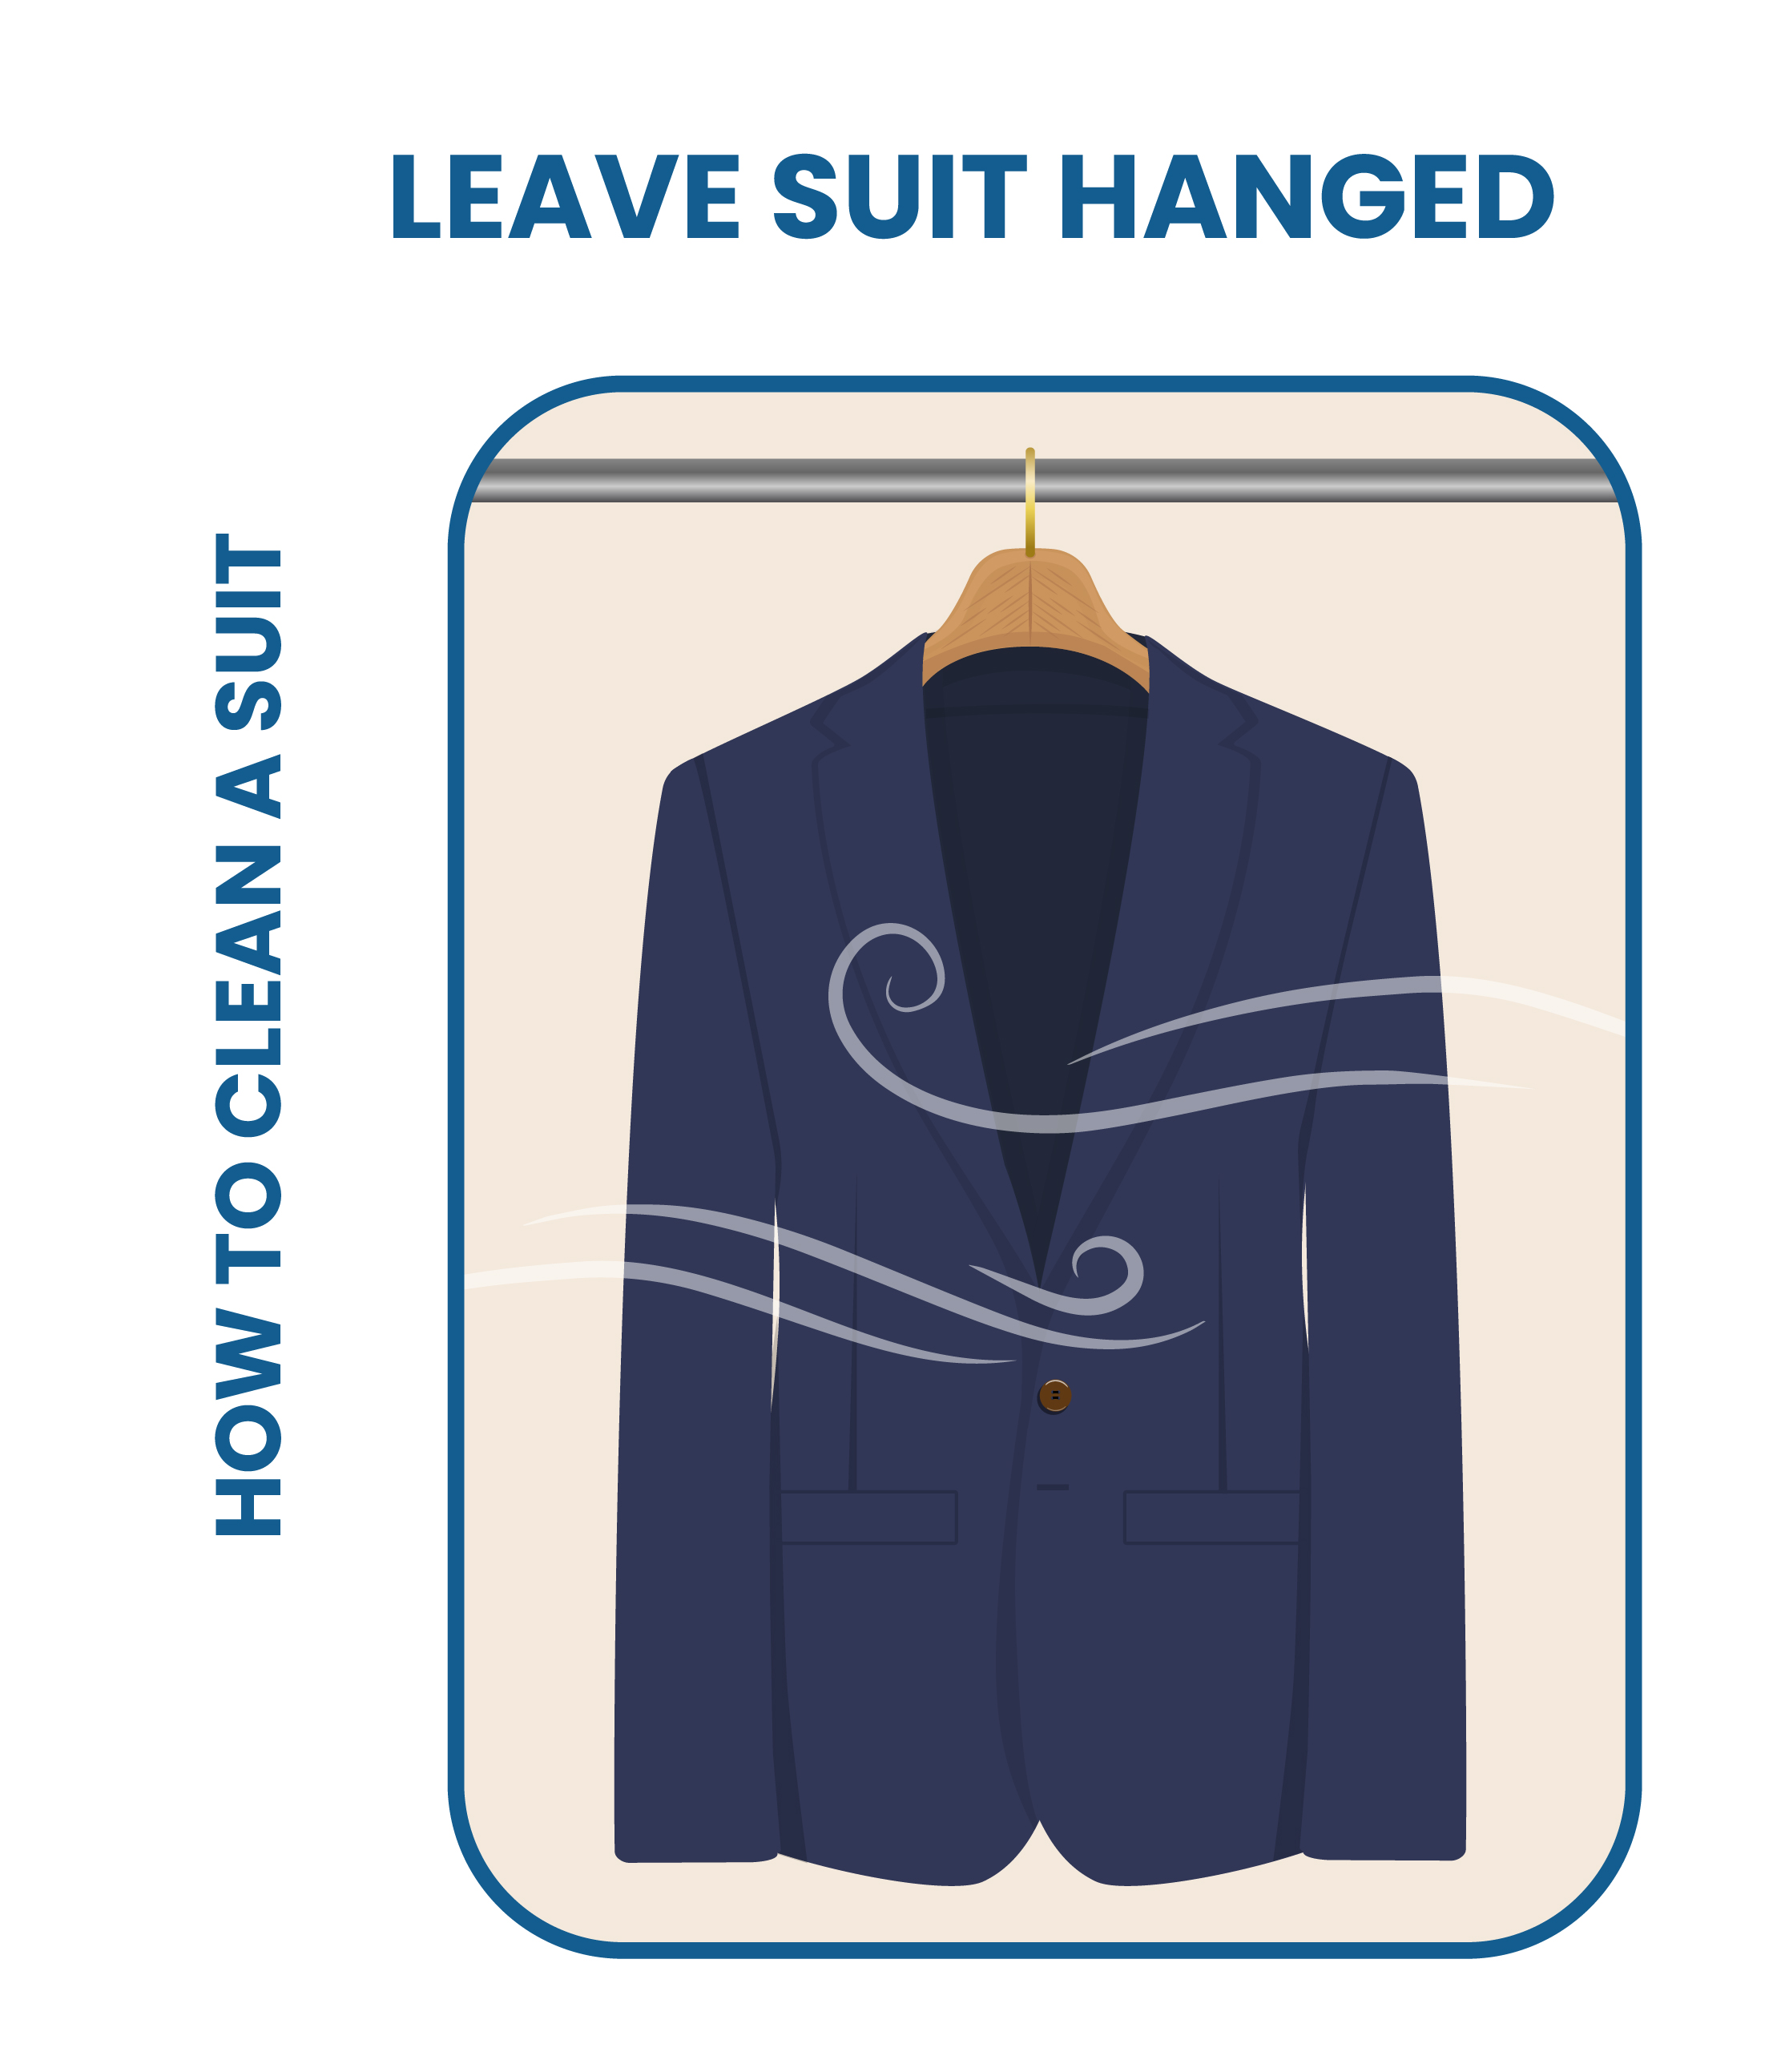 leave your suit hanged after you finished with the cleaning